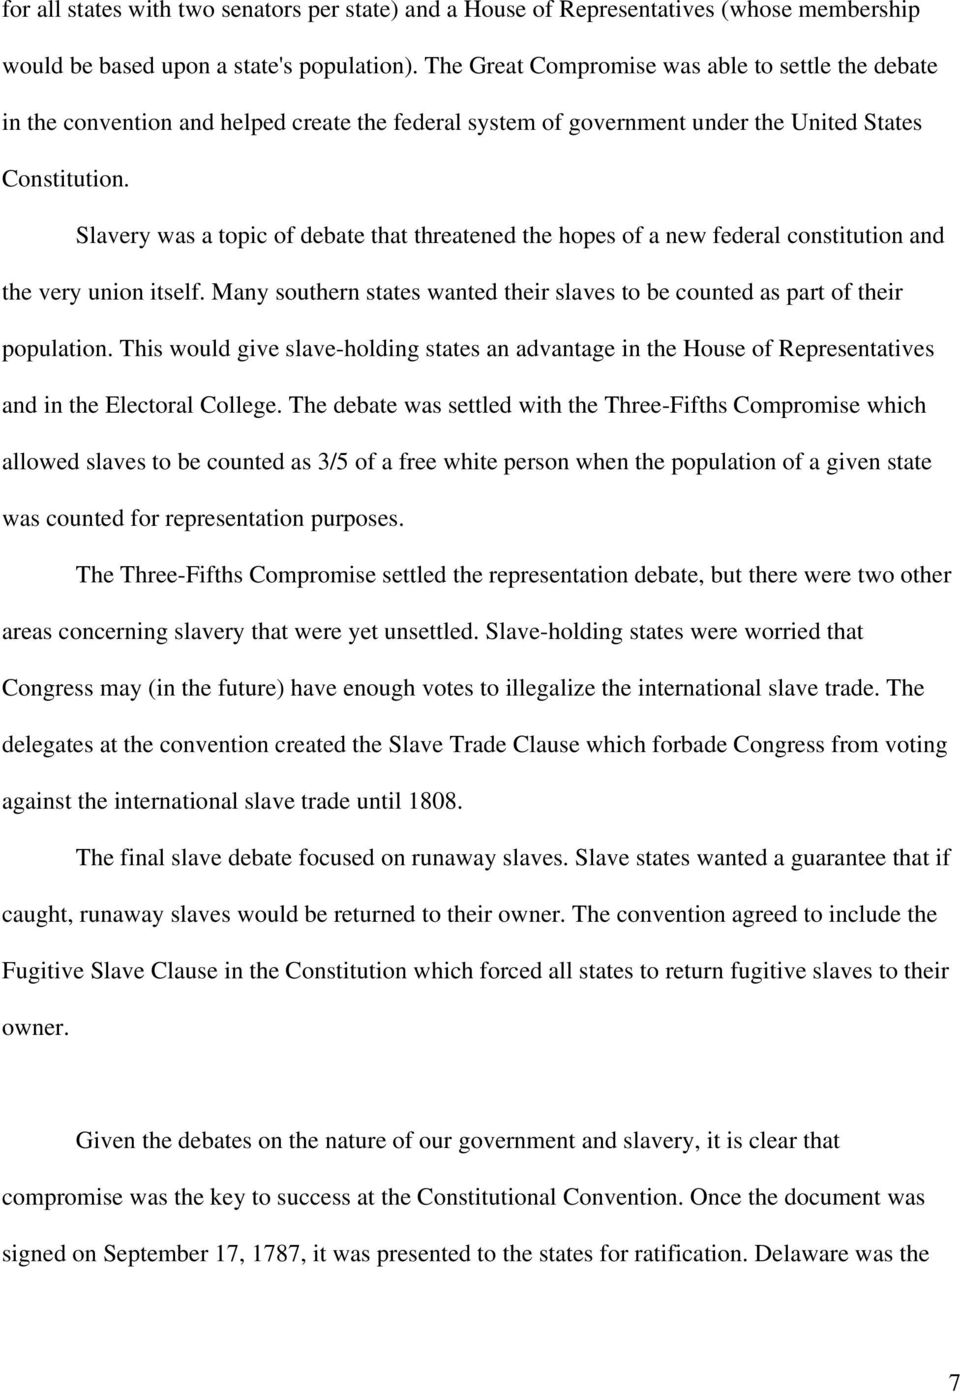 medium resolution of Constitutional Convention: A Decision-Making Activity (Designed for 8 th  Grade Social Studies Students) - PDF Free Download